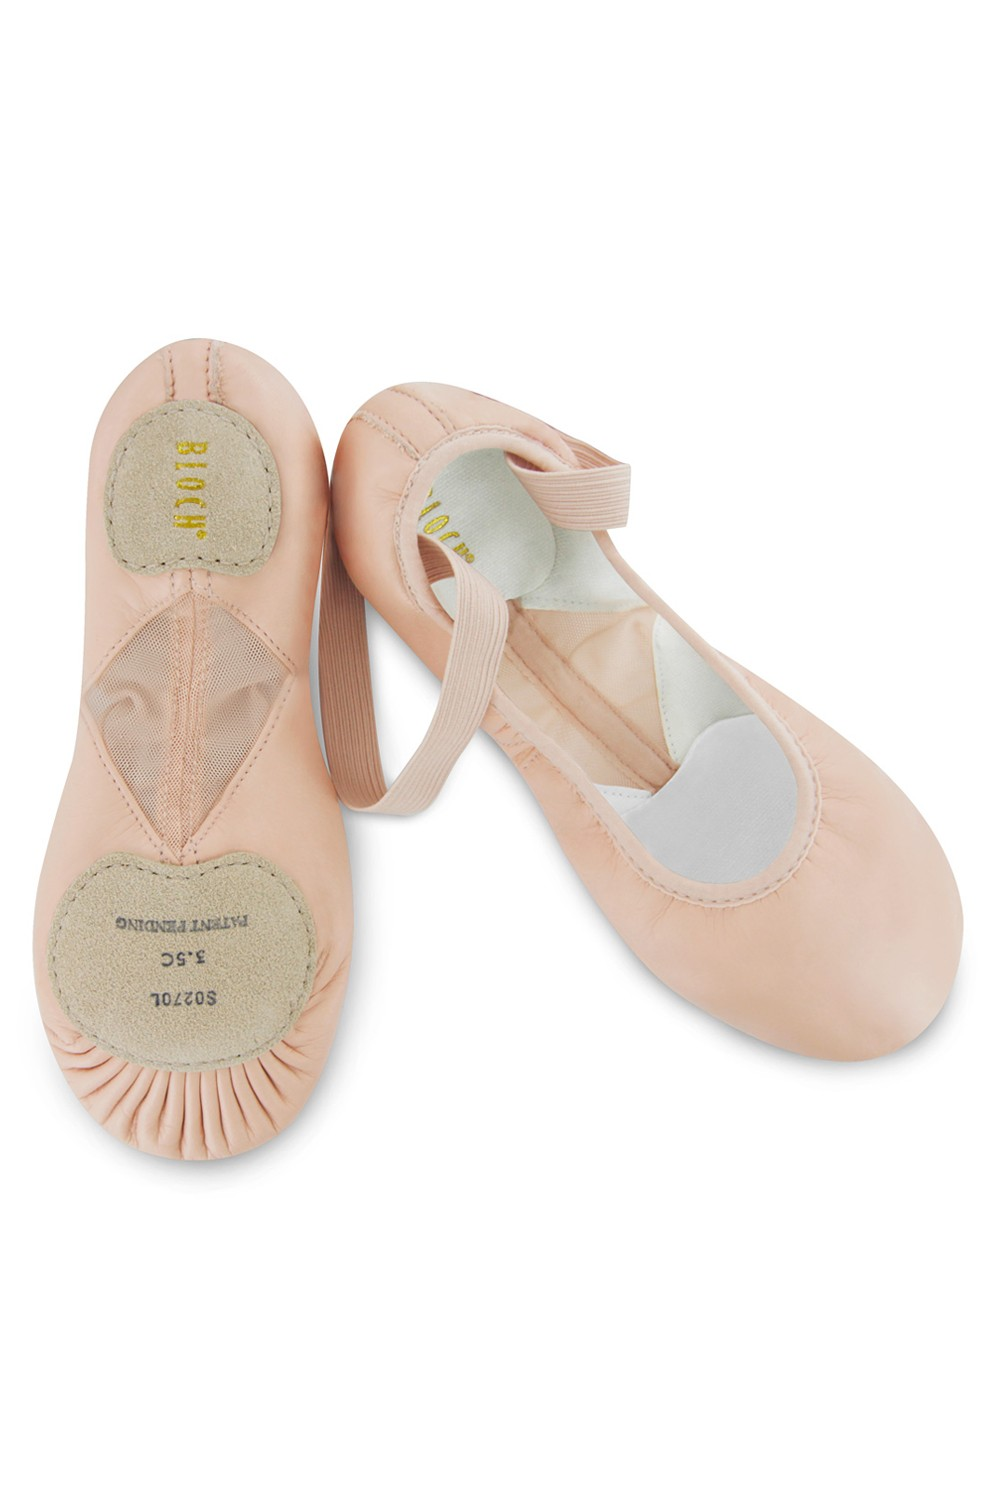 Proarch Leather Ballet Shoes Women's Ballet Shoes